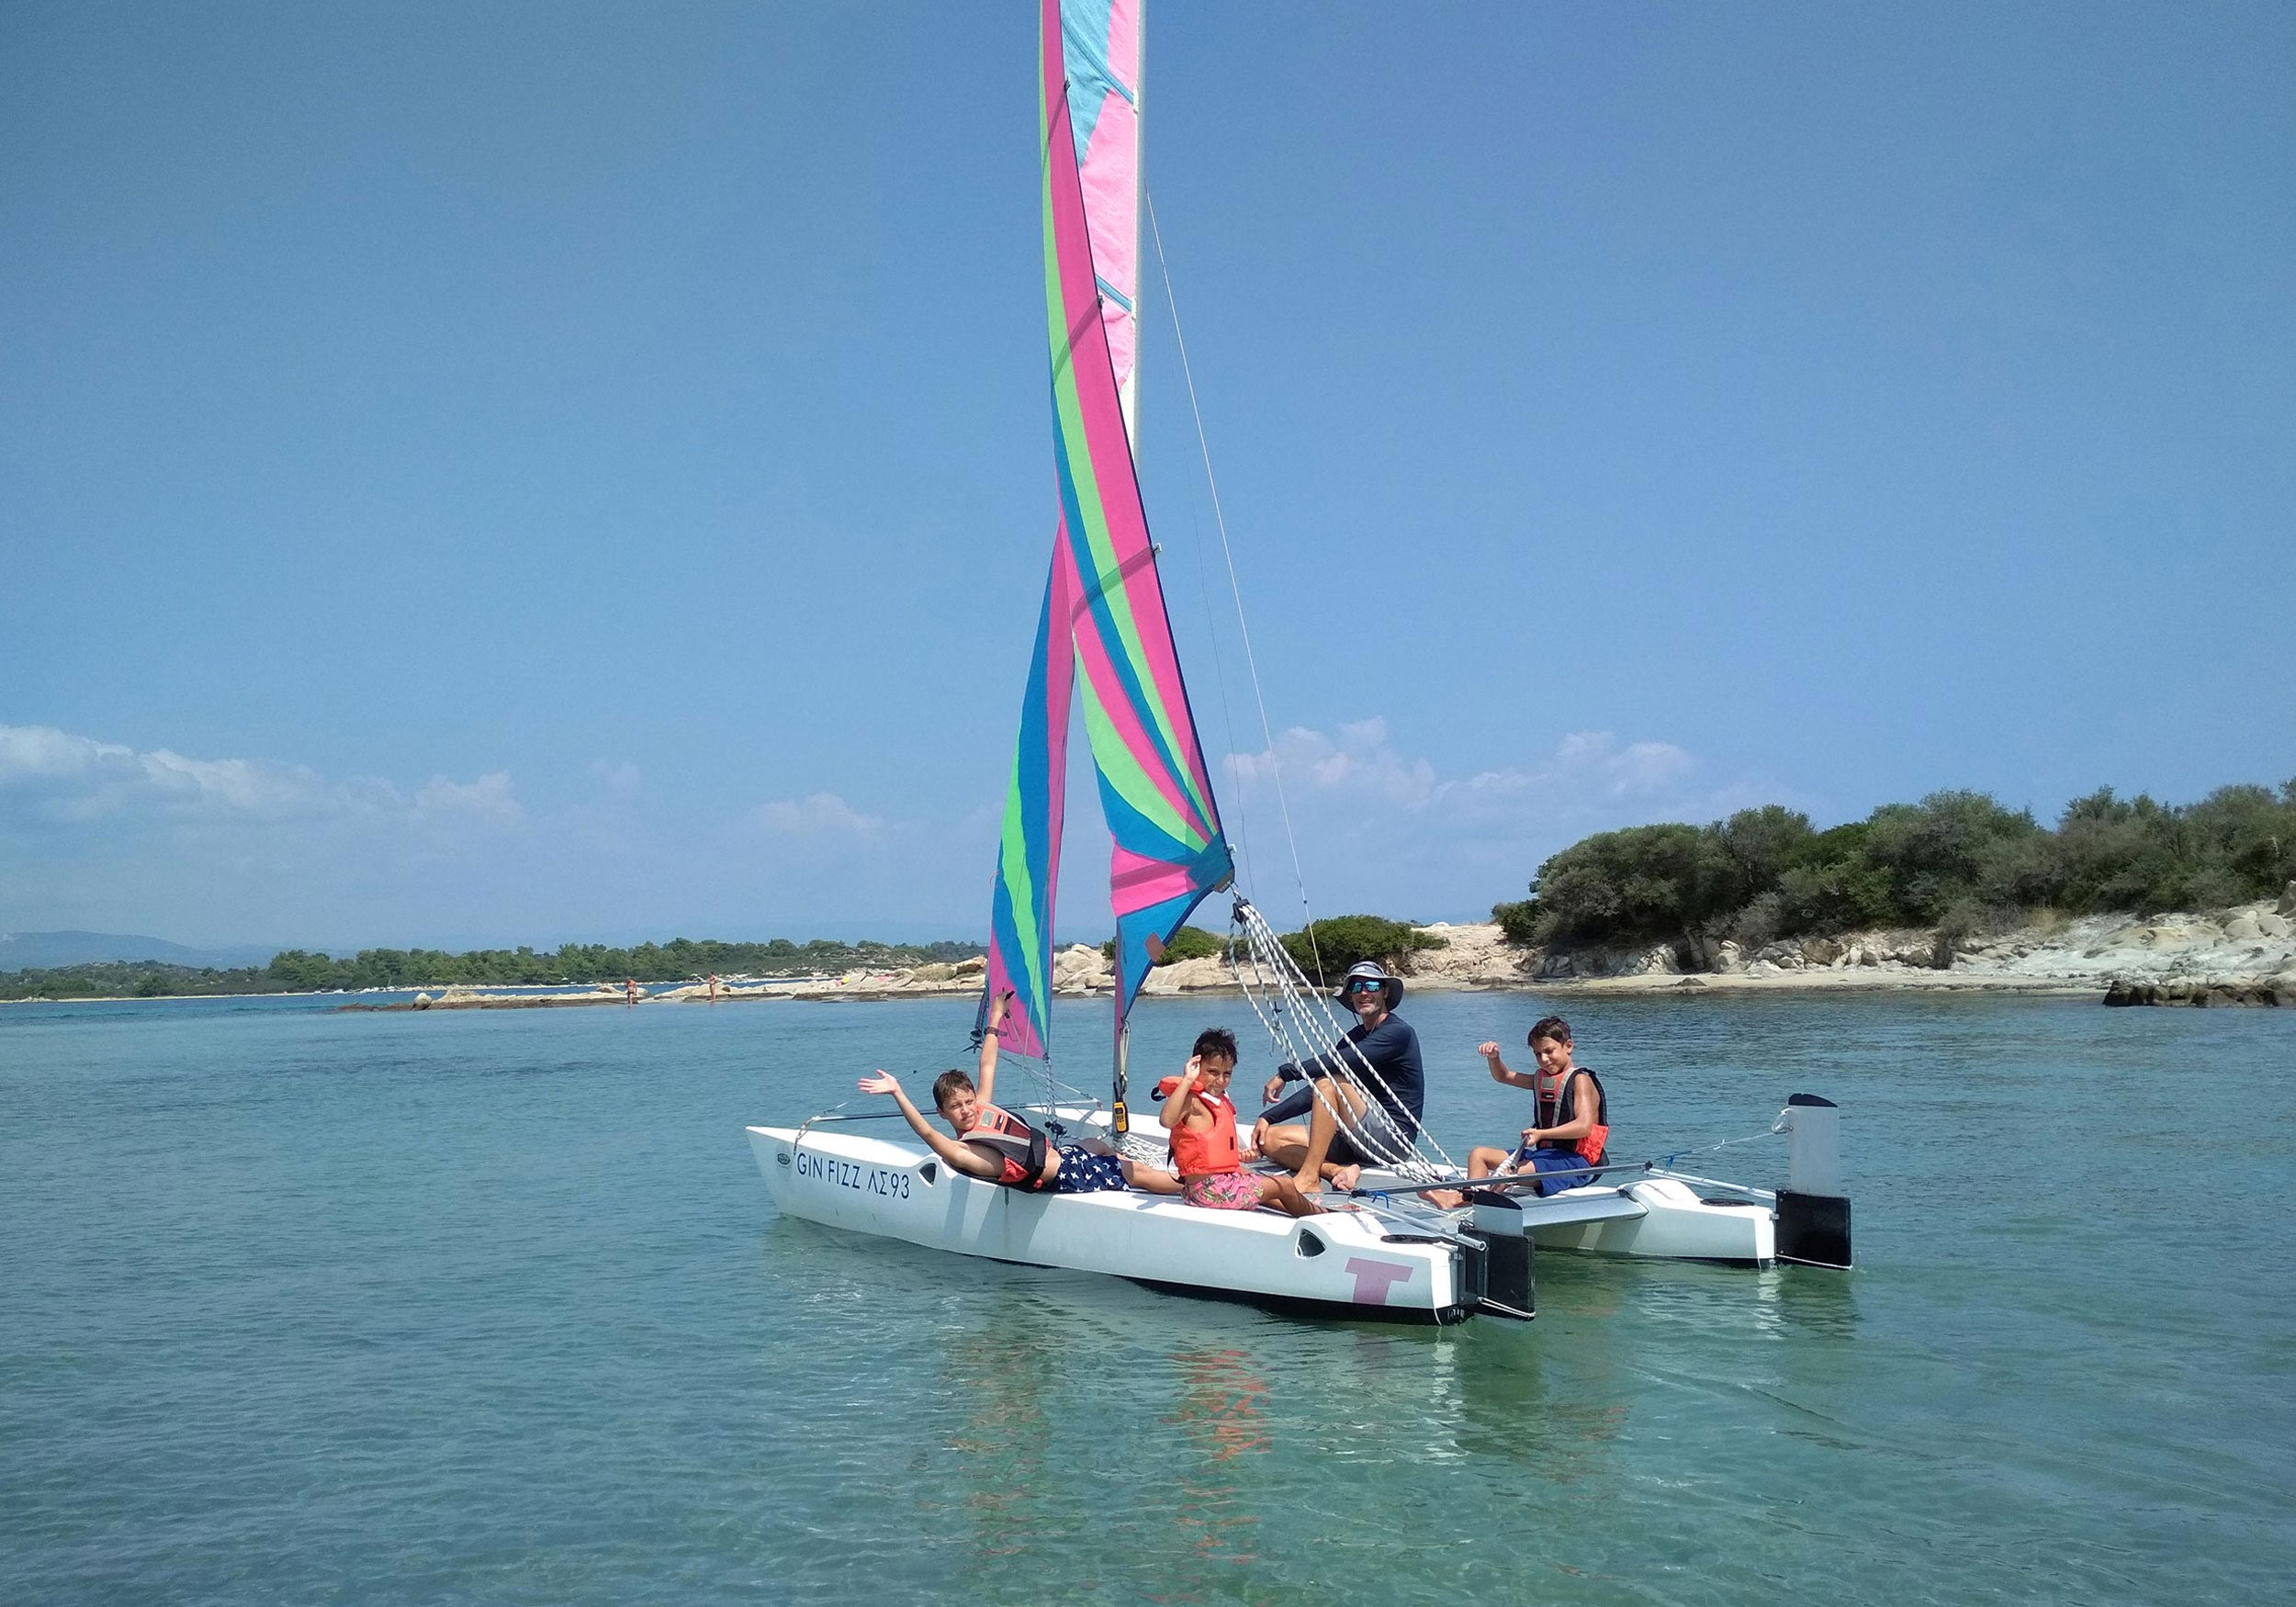 Group of people sailing a catamaran